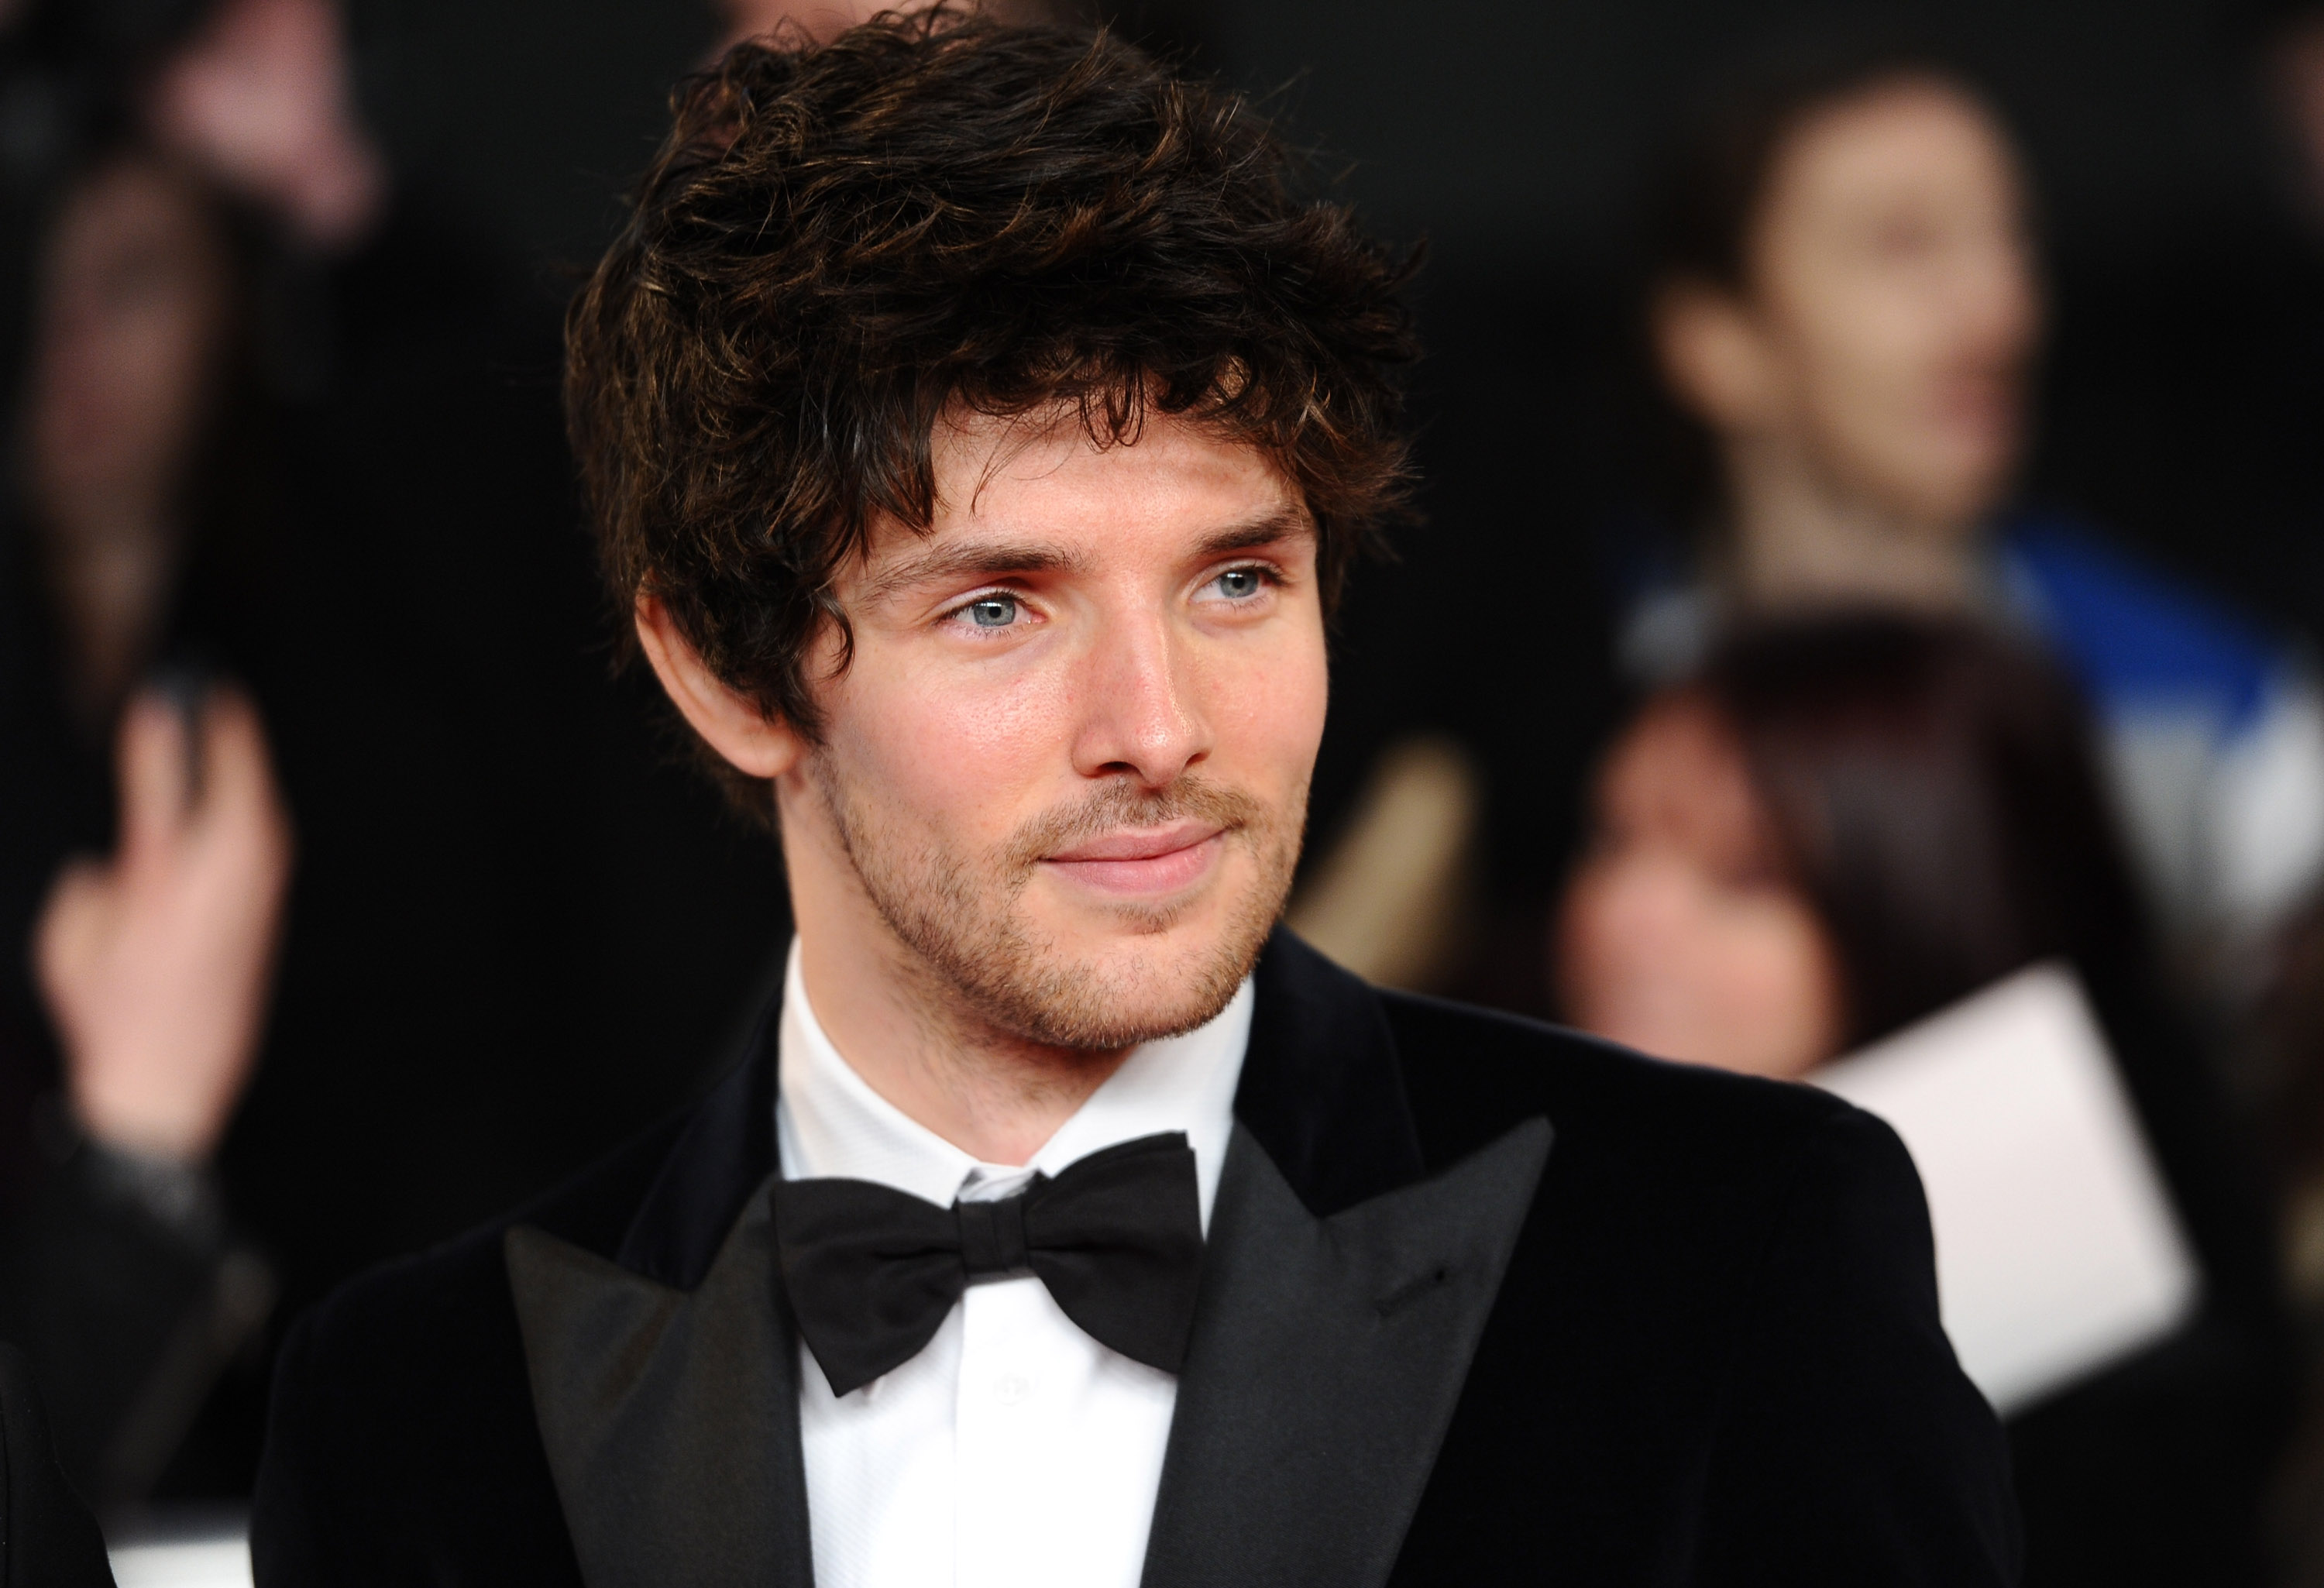 colin and bradley dating Colin morgan (actor) photo galleries, news, relationships and more on spokeo.